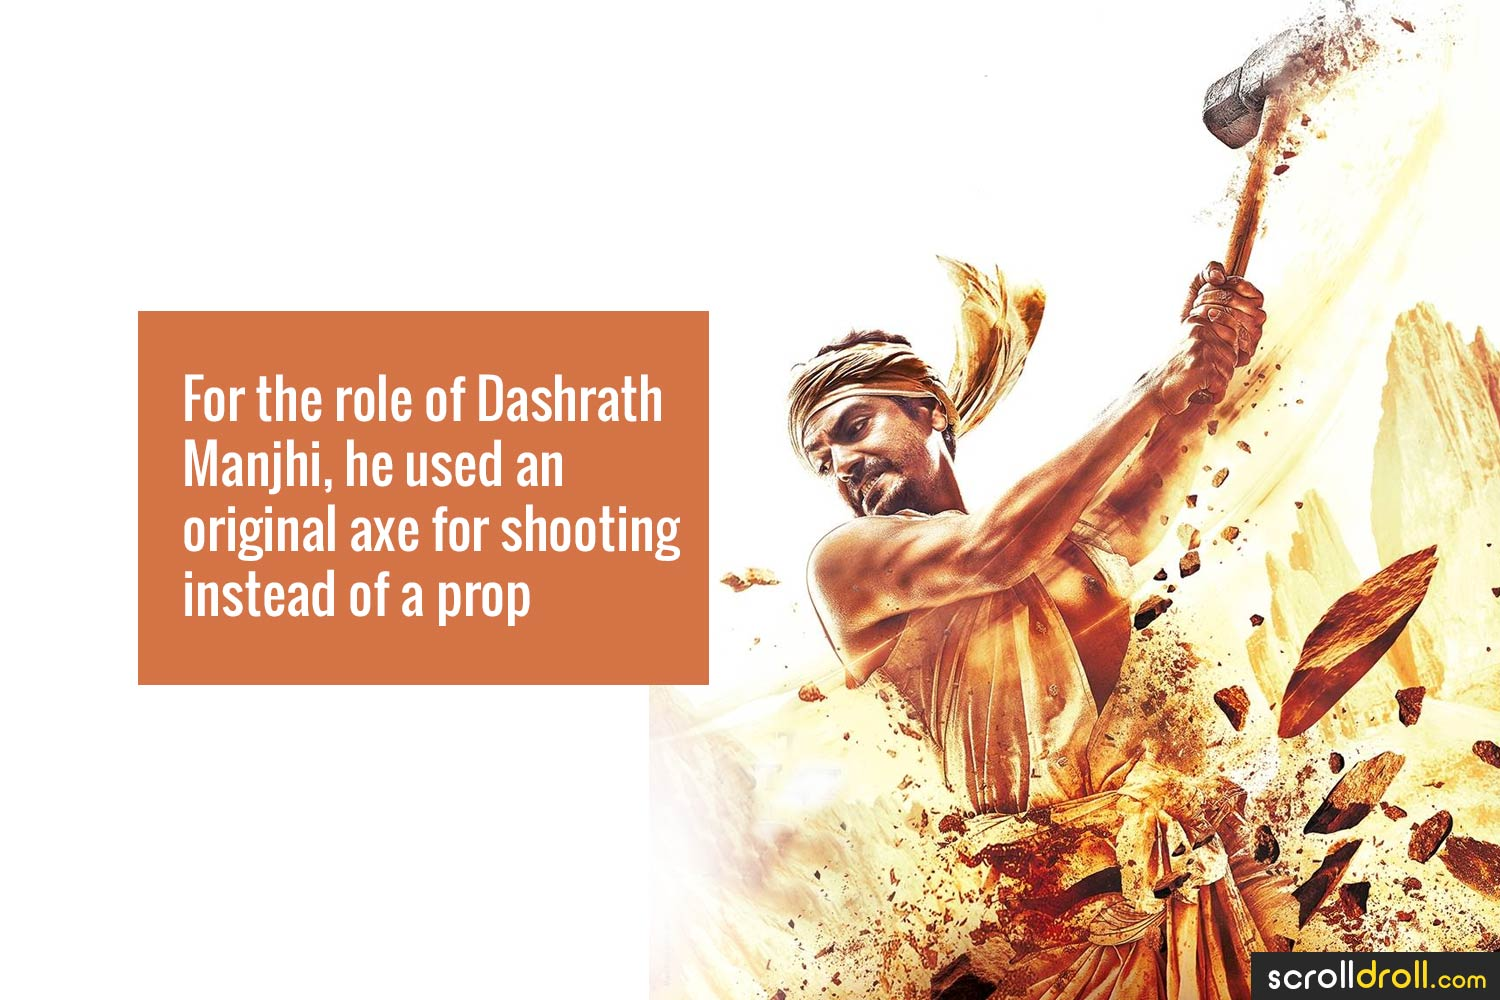 Facts about Nawazuddin Siddique-For the role of Dashrath Manjhi, he used an original exe for shooting instead of a prop